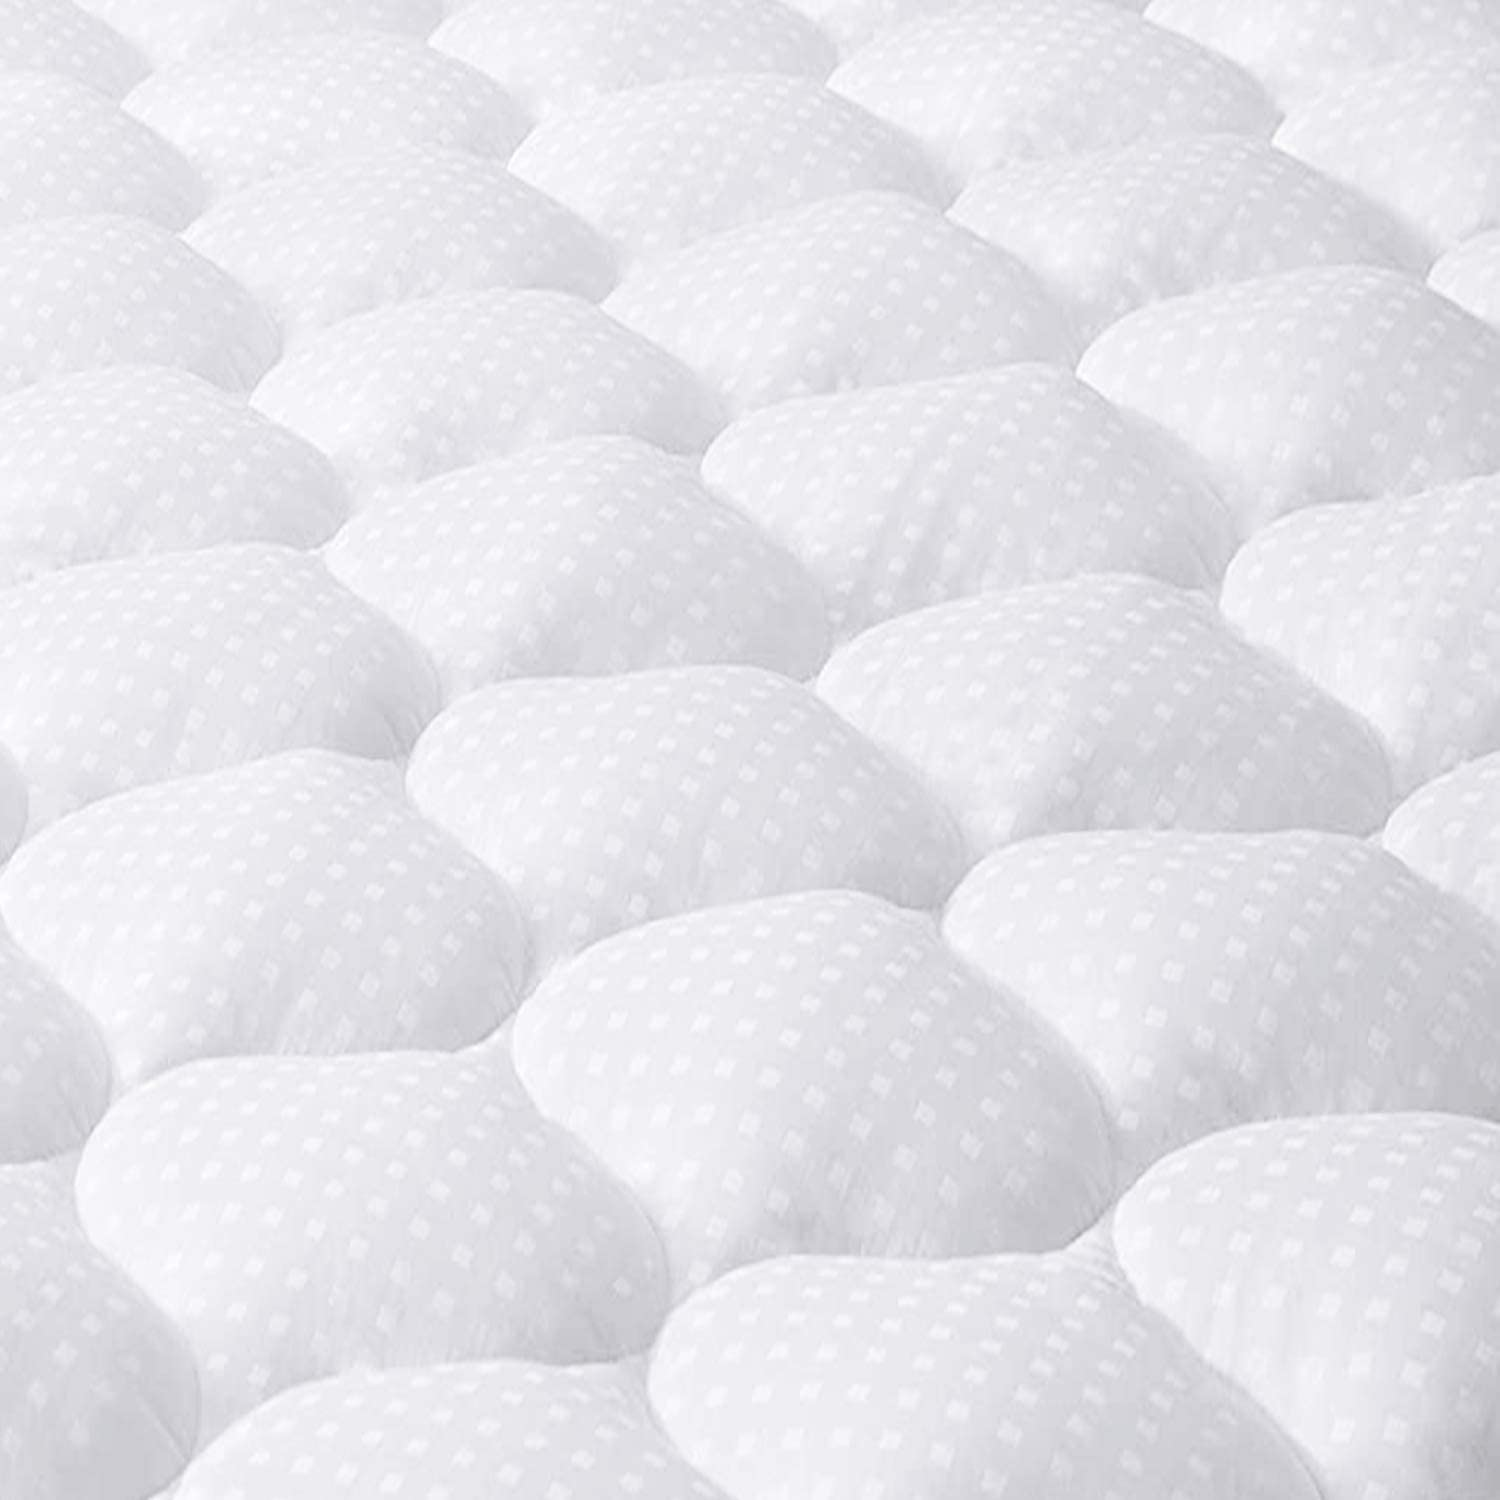 JUEYINGBAILI Mattress Pad Queen Mattress Topper - Quilted Fitted Cooling Queen Mattress Pads - Overfilled with Breathable Snow Down Alternative Filling Mattress Cover